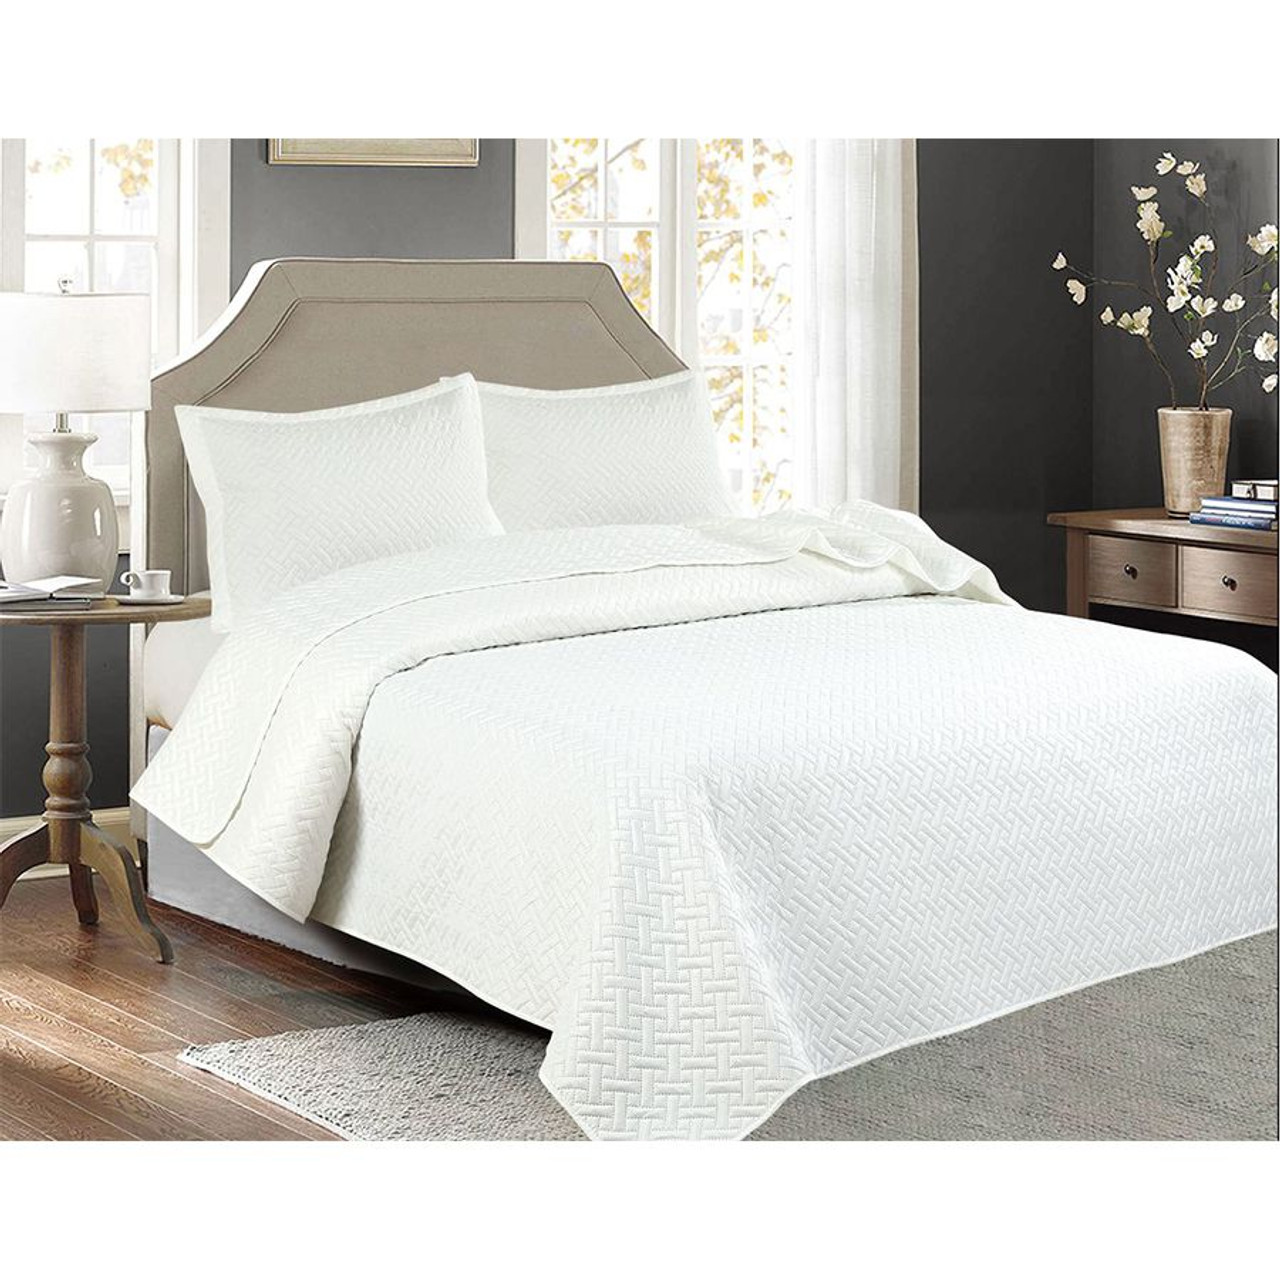 3 PCS Squared Stitched Pinsonic Reversible Oversized Bedspread White Color